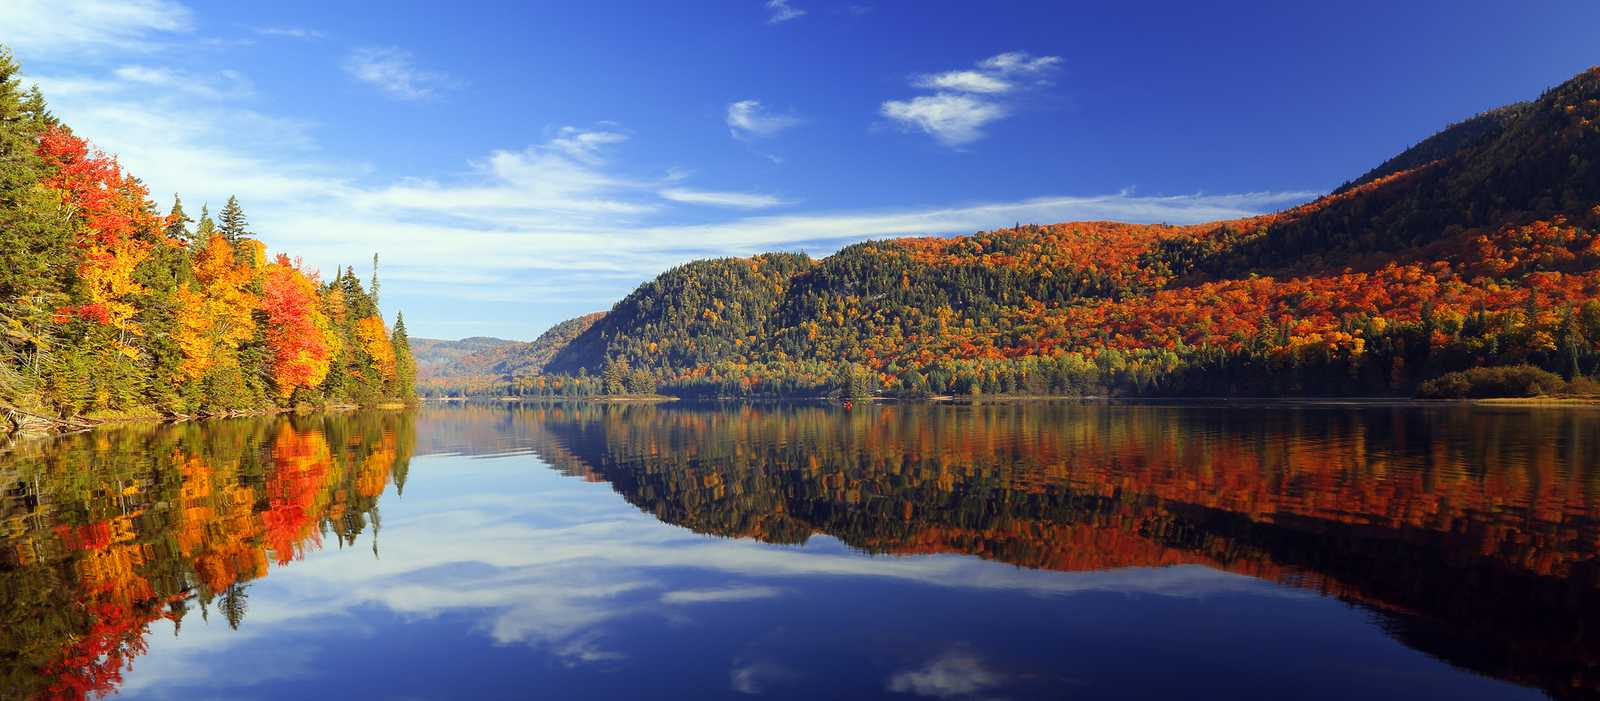 Der Mont-Tremblant National Park